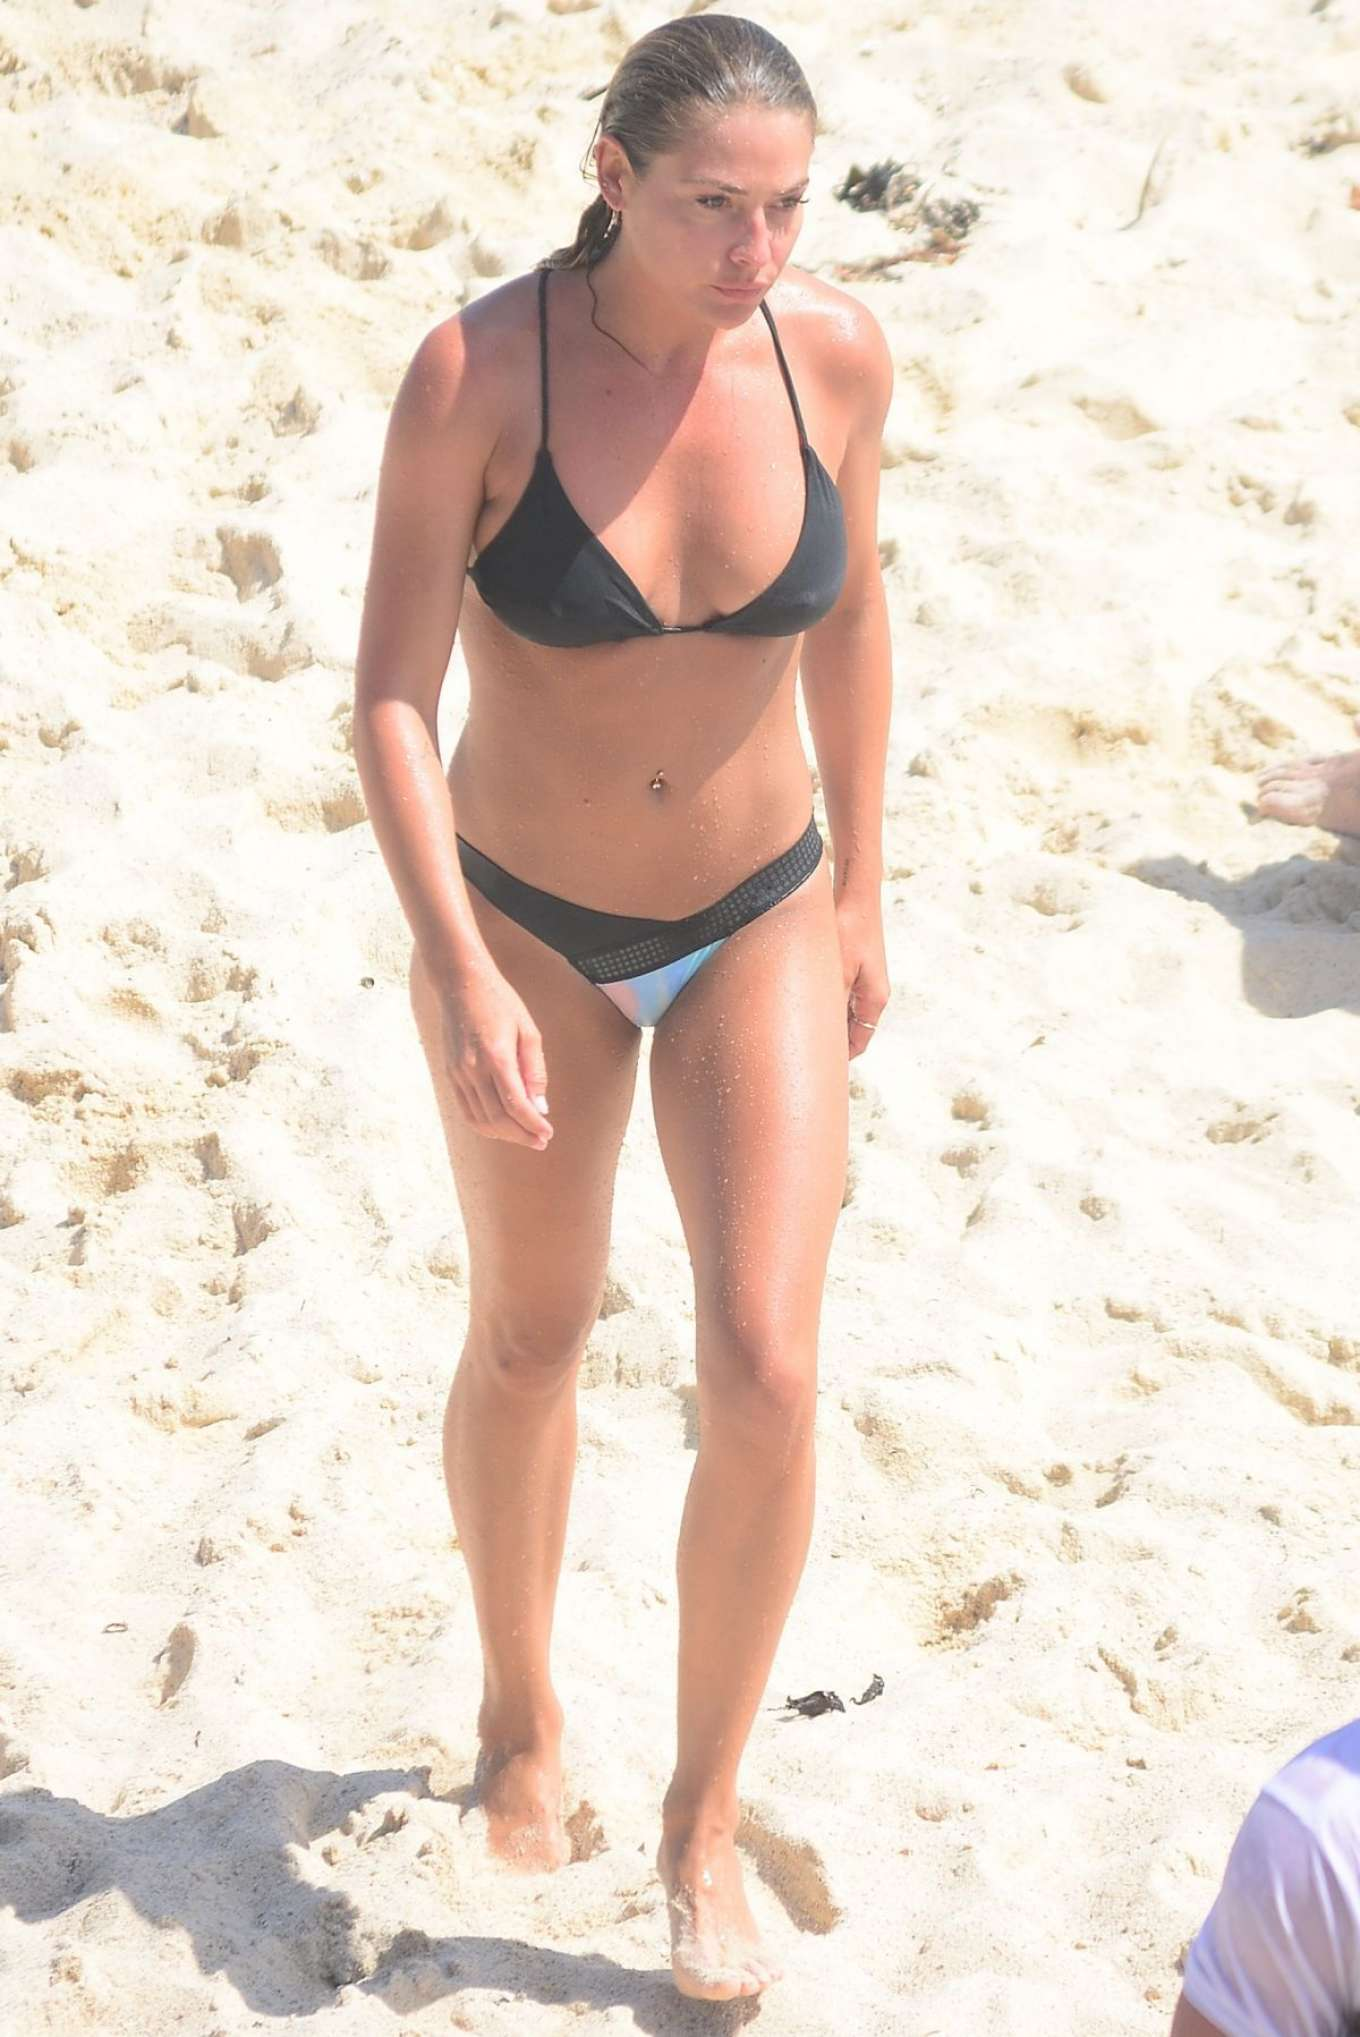 Lisa Clark in Black Bikini on a beach in Sydney Pic 14 of 35